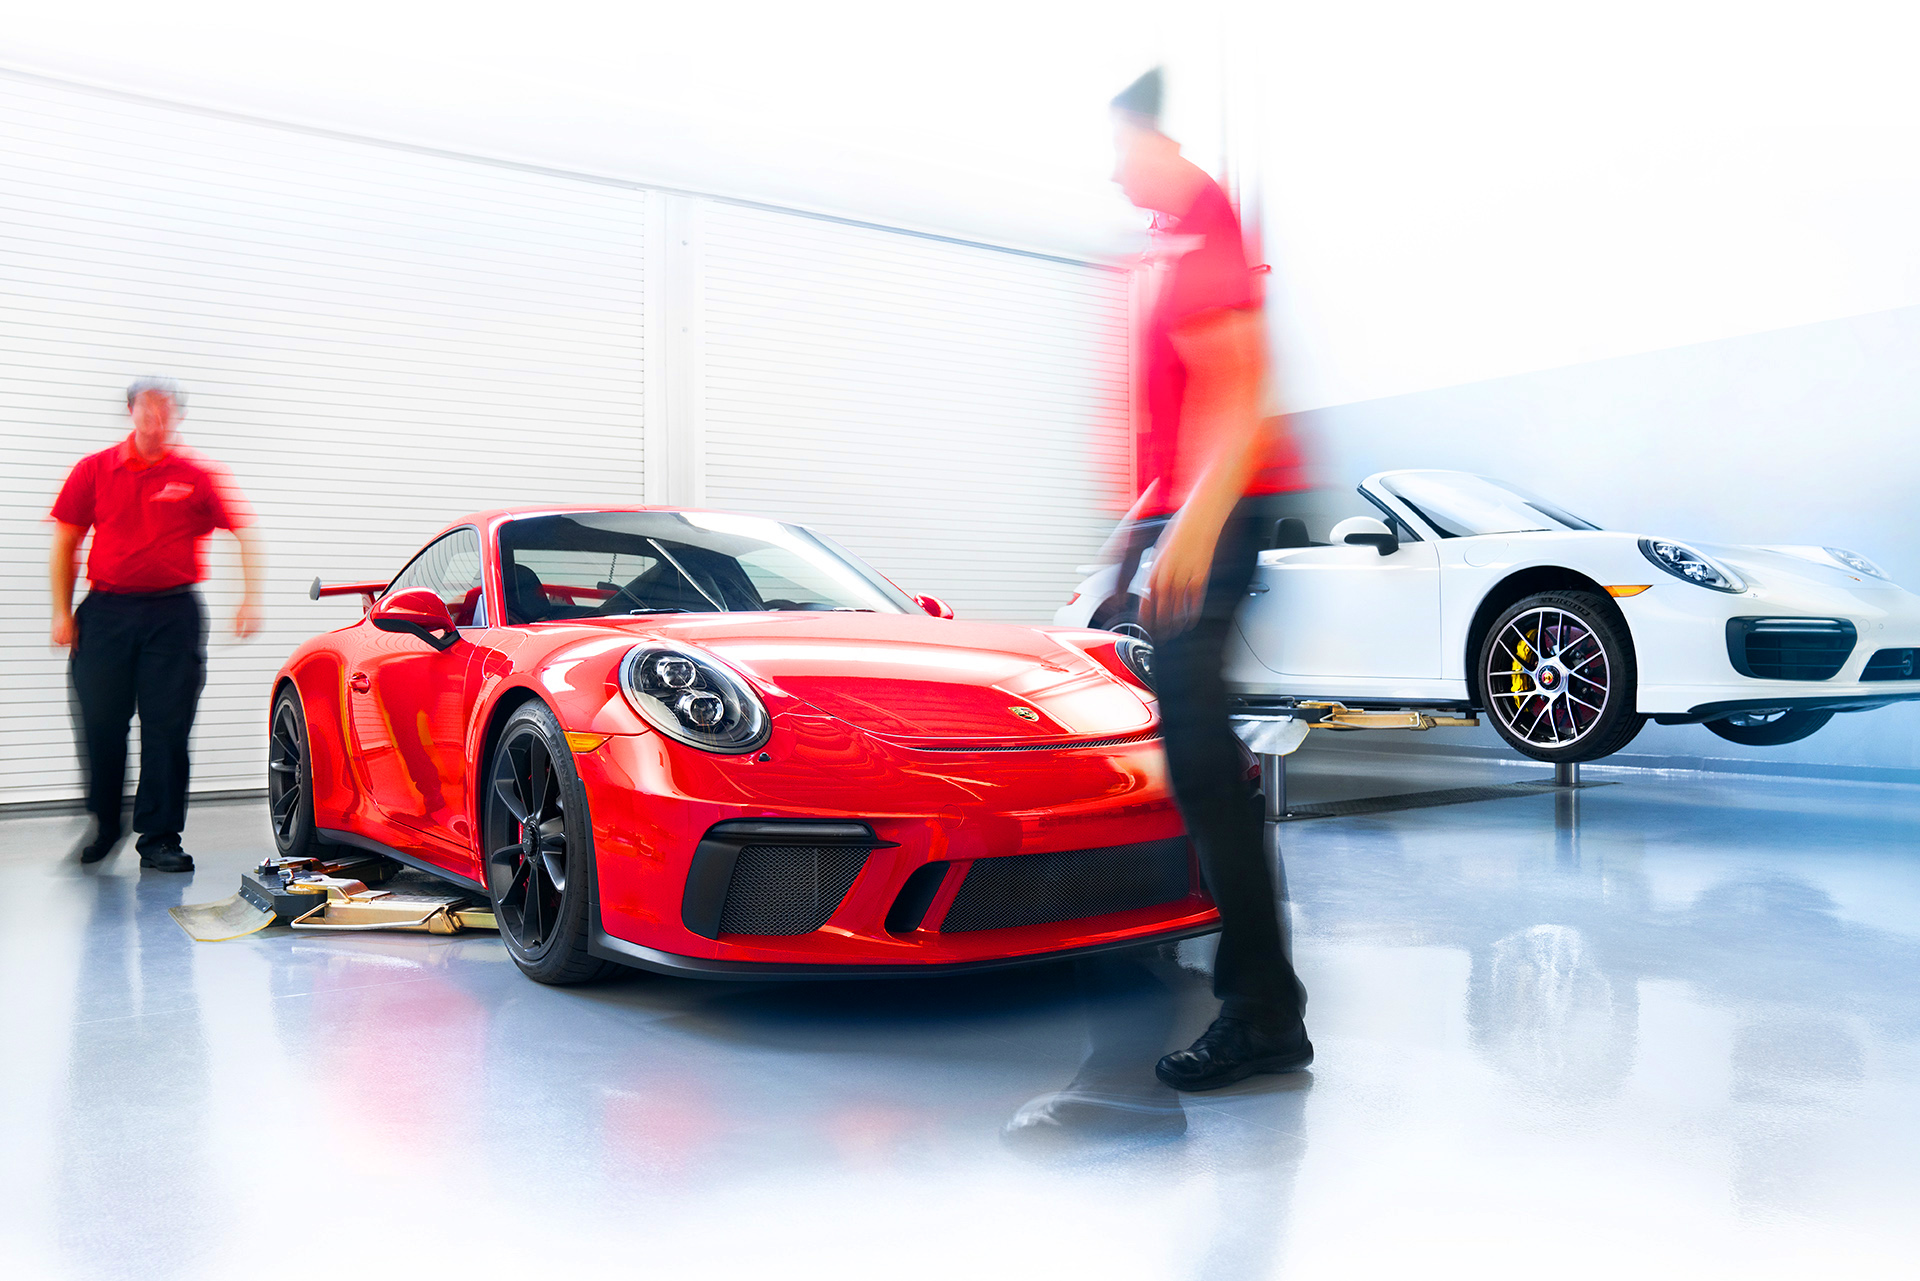 Porsche Automotive Photographer North America